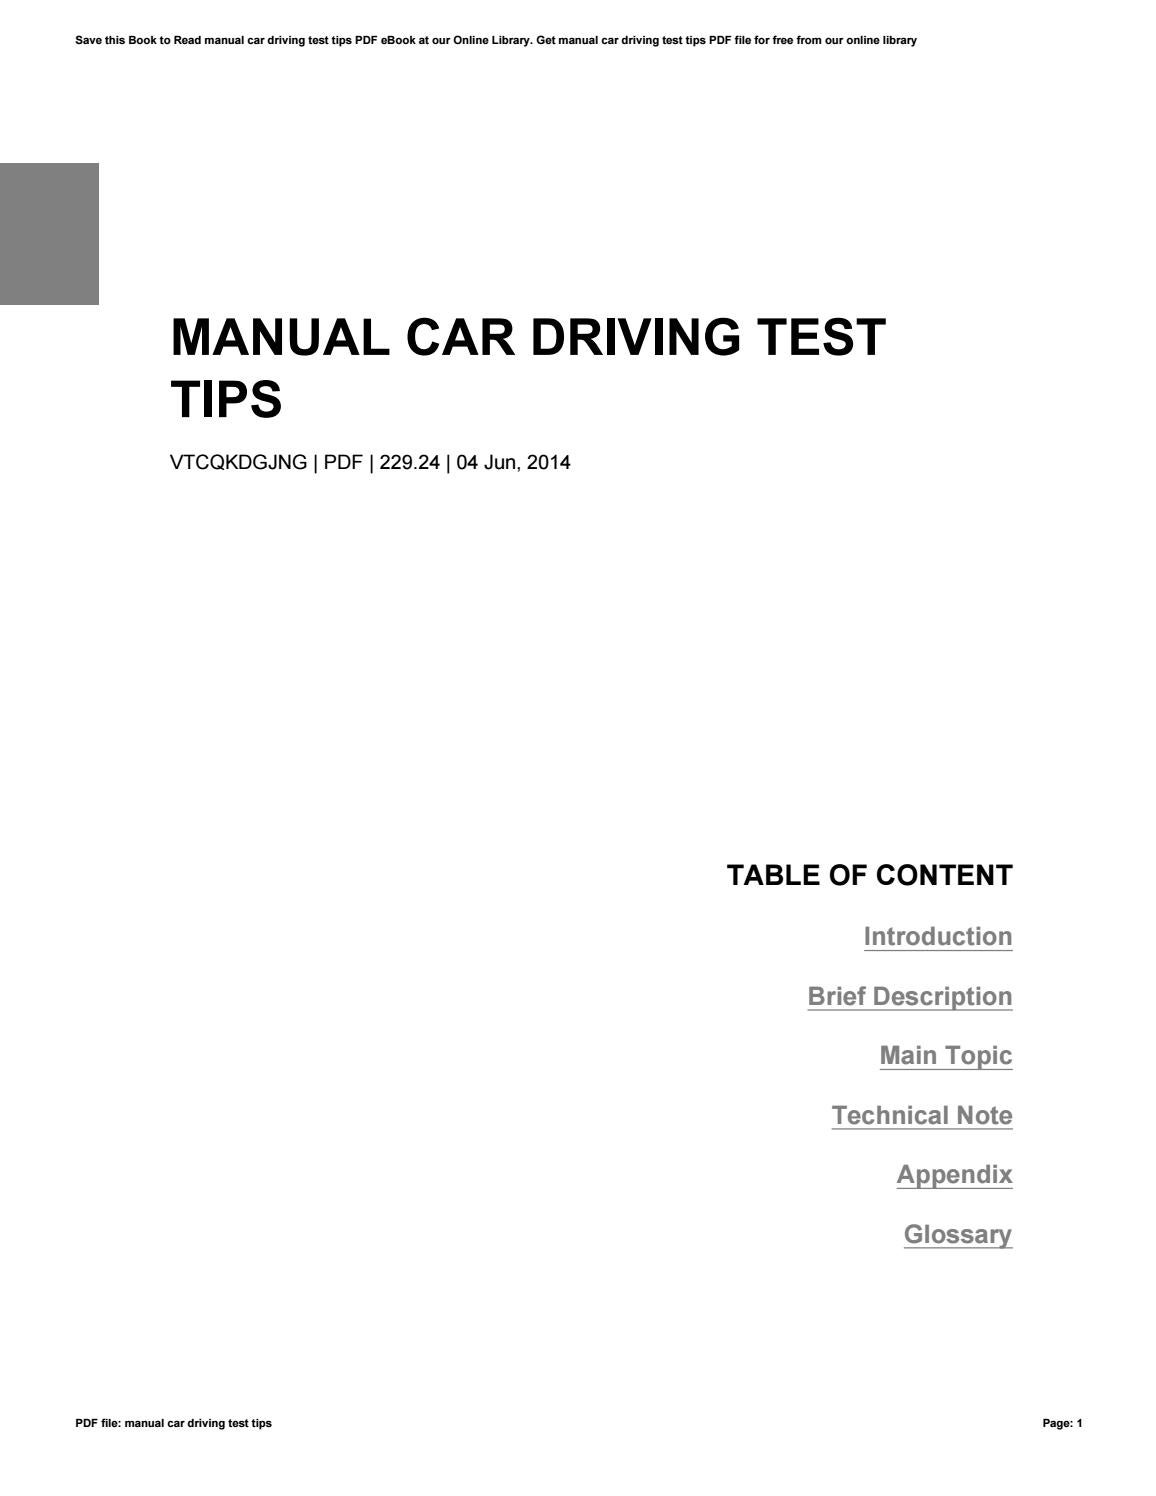 Indian driving manual pdf at manuals library.